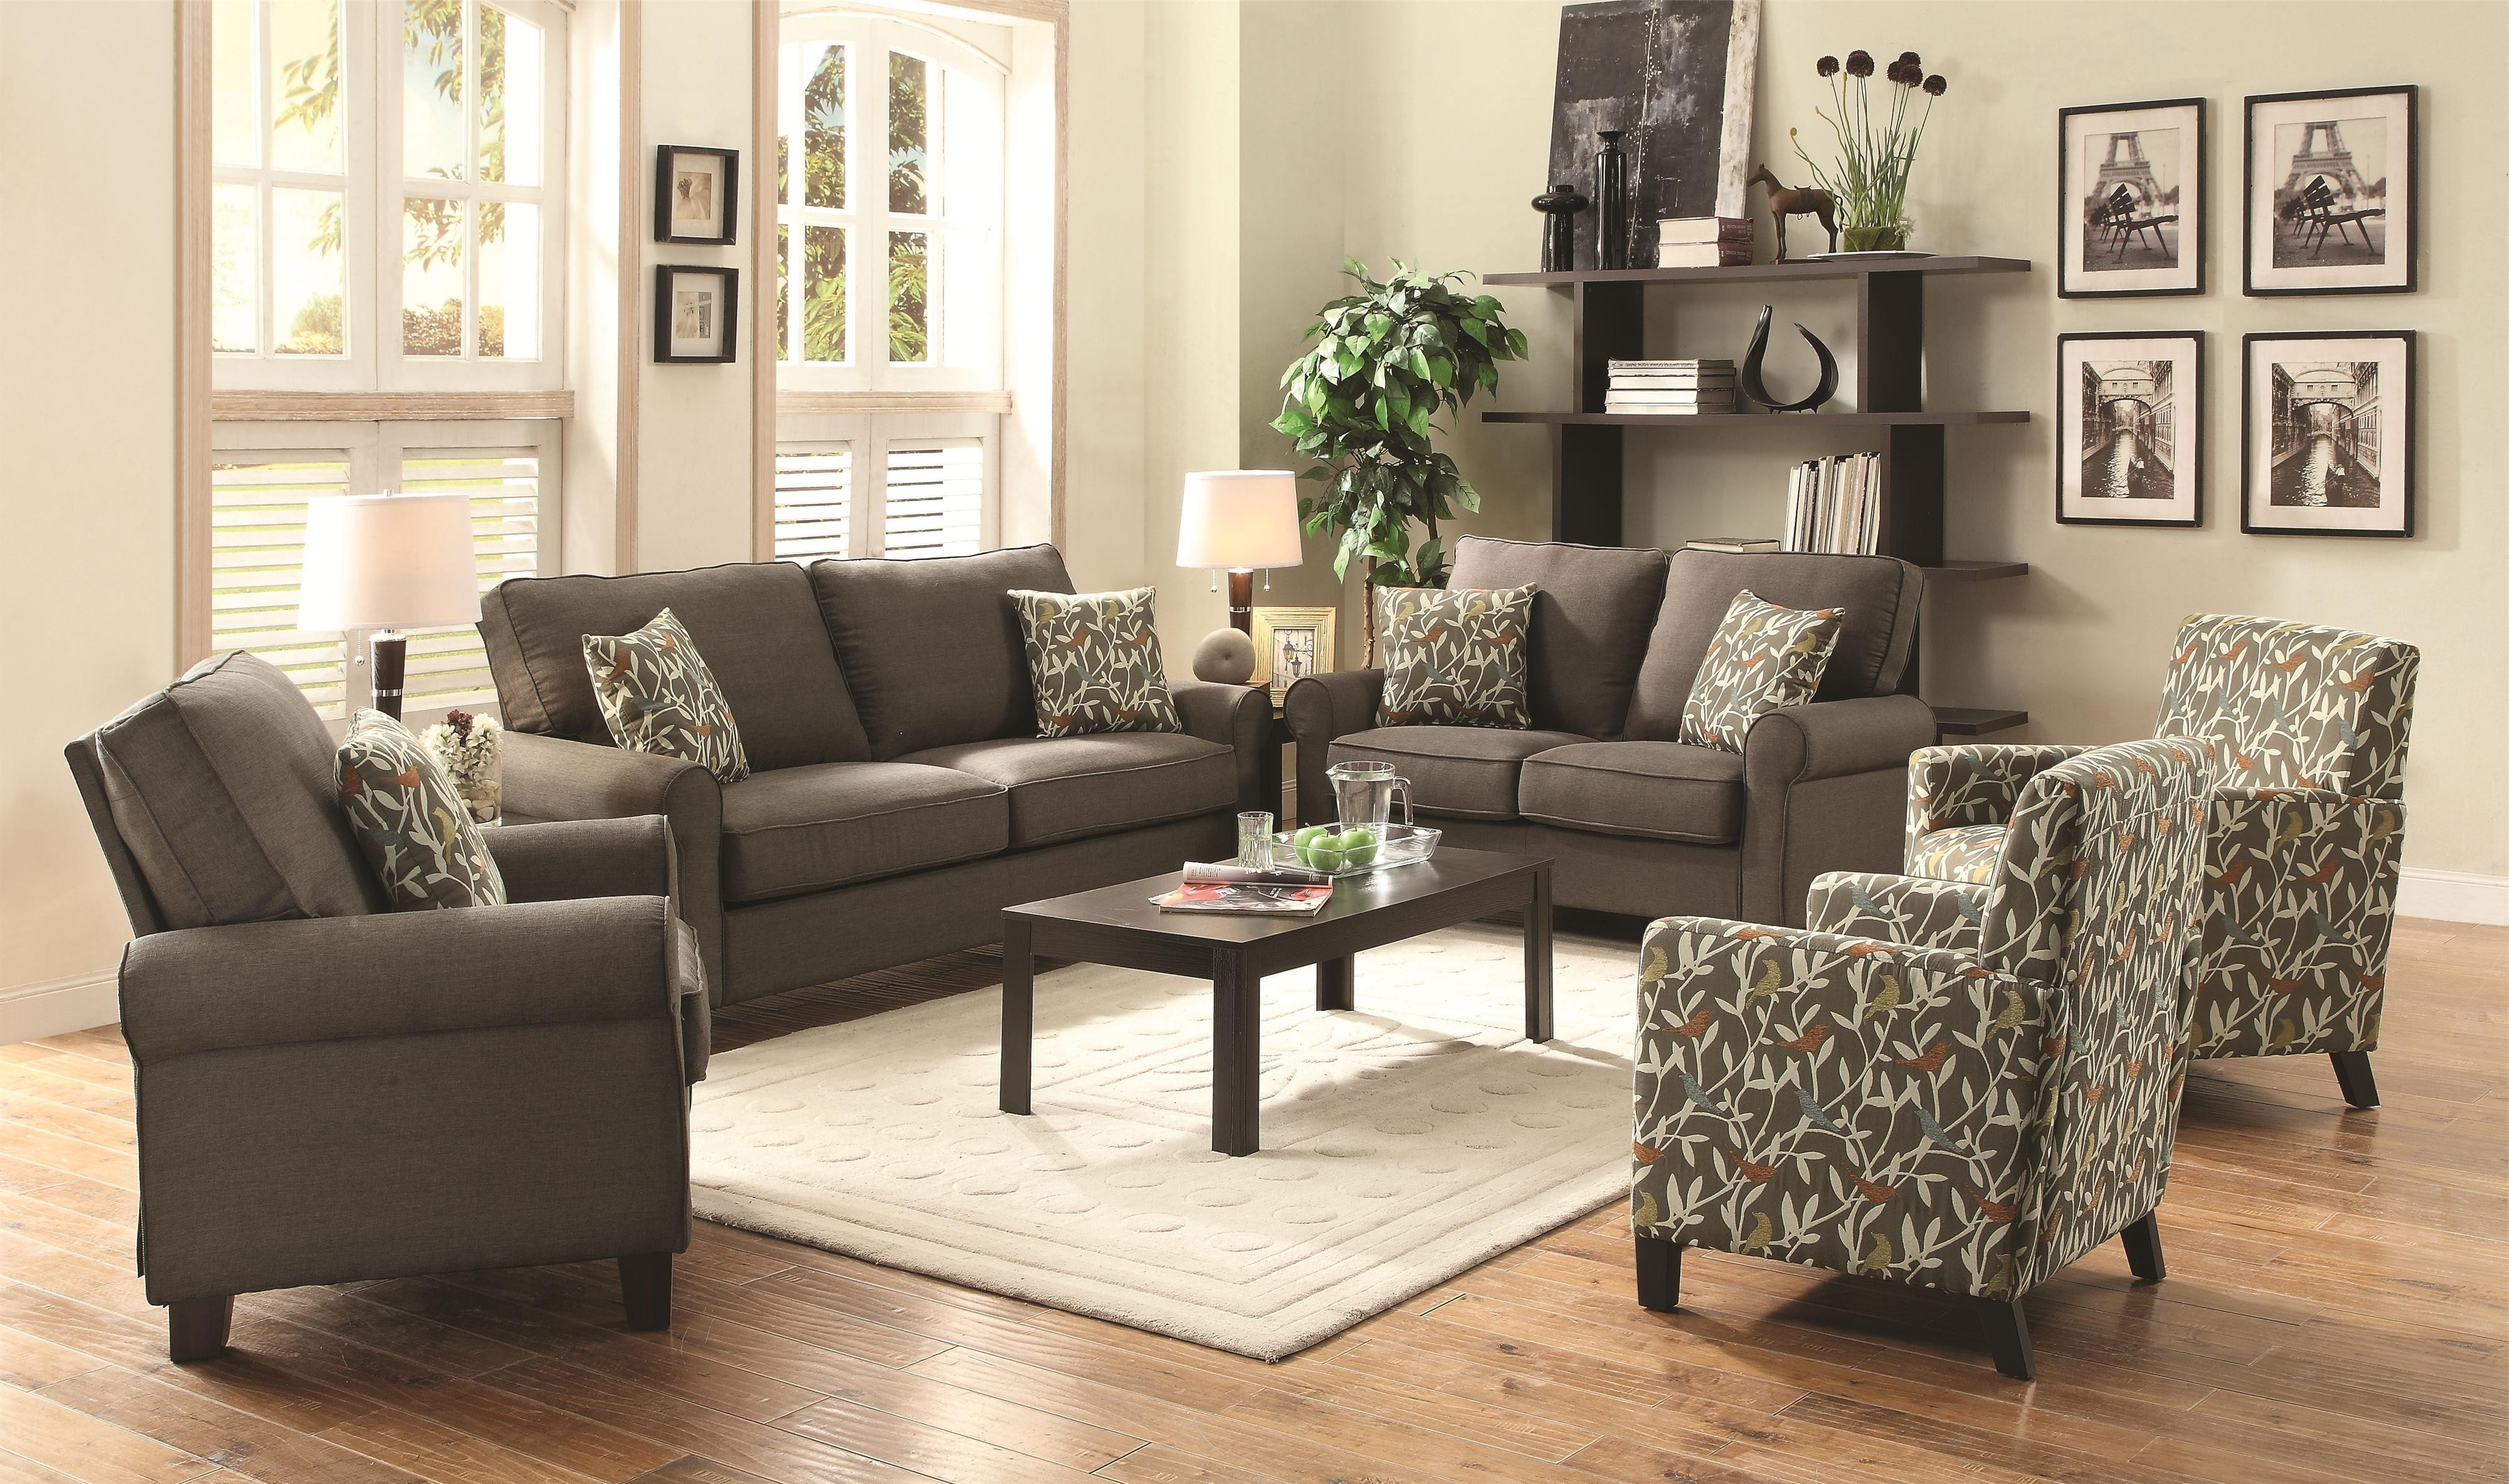 Casual Sofas And Chairs – Fjellkjeden Intended For Most Recent Casual Sofas And Chairs (View 3 of 20)